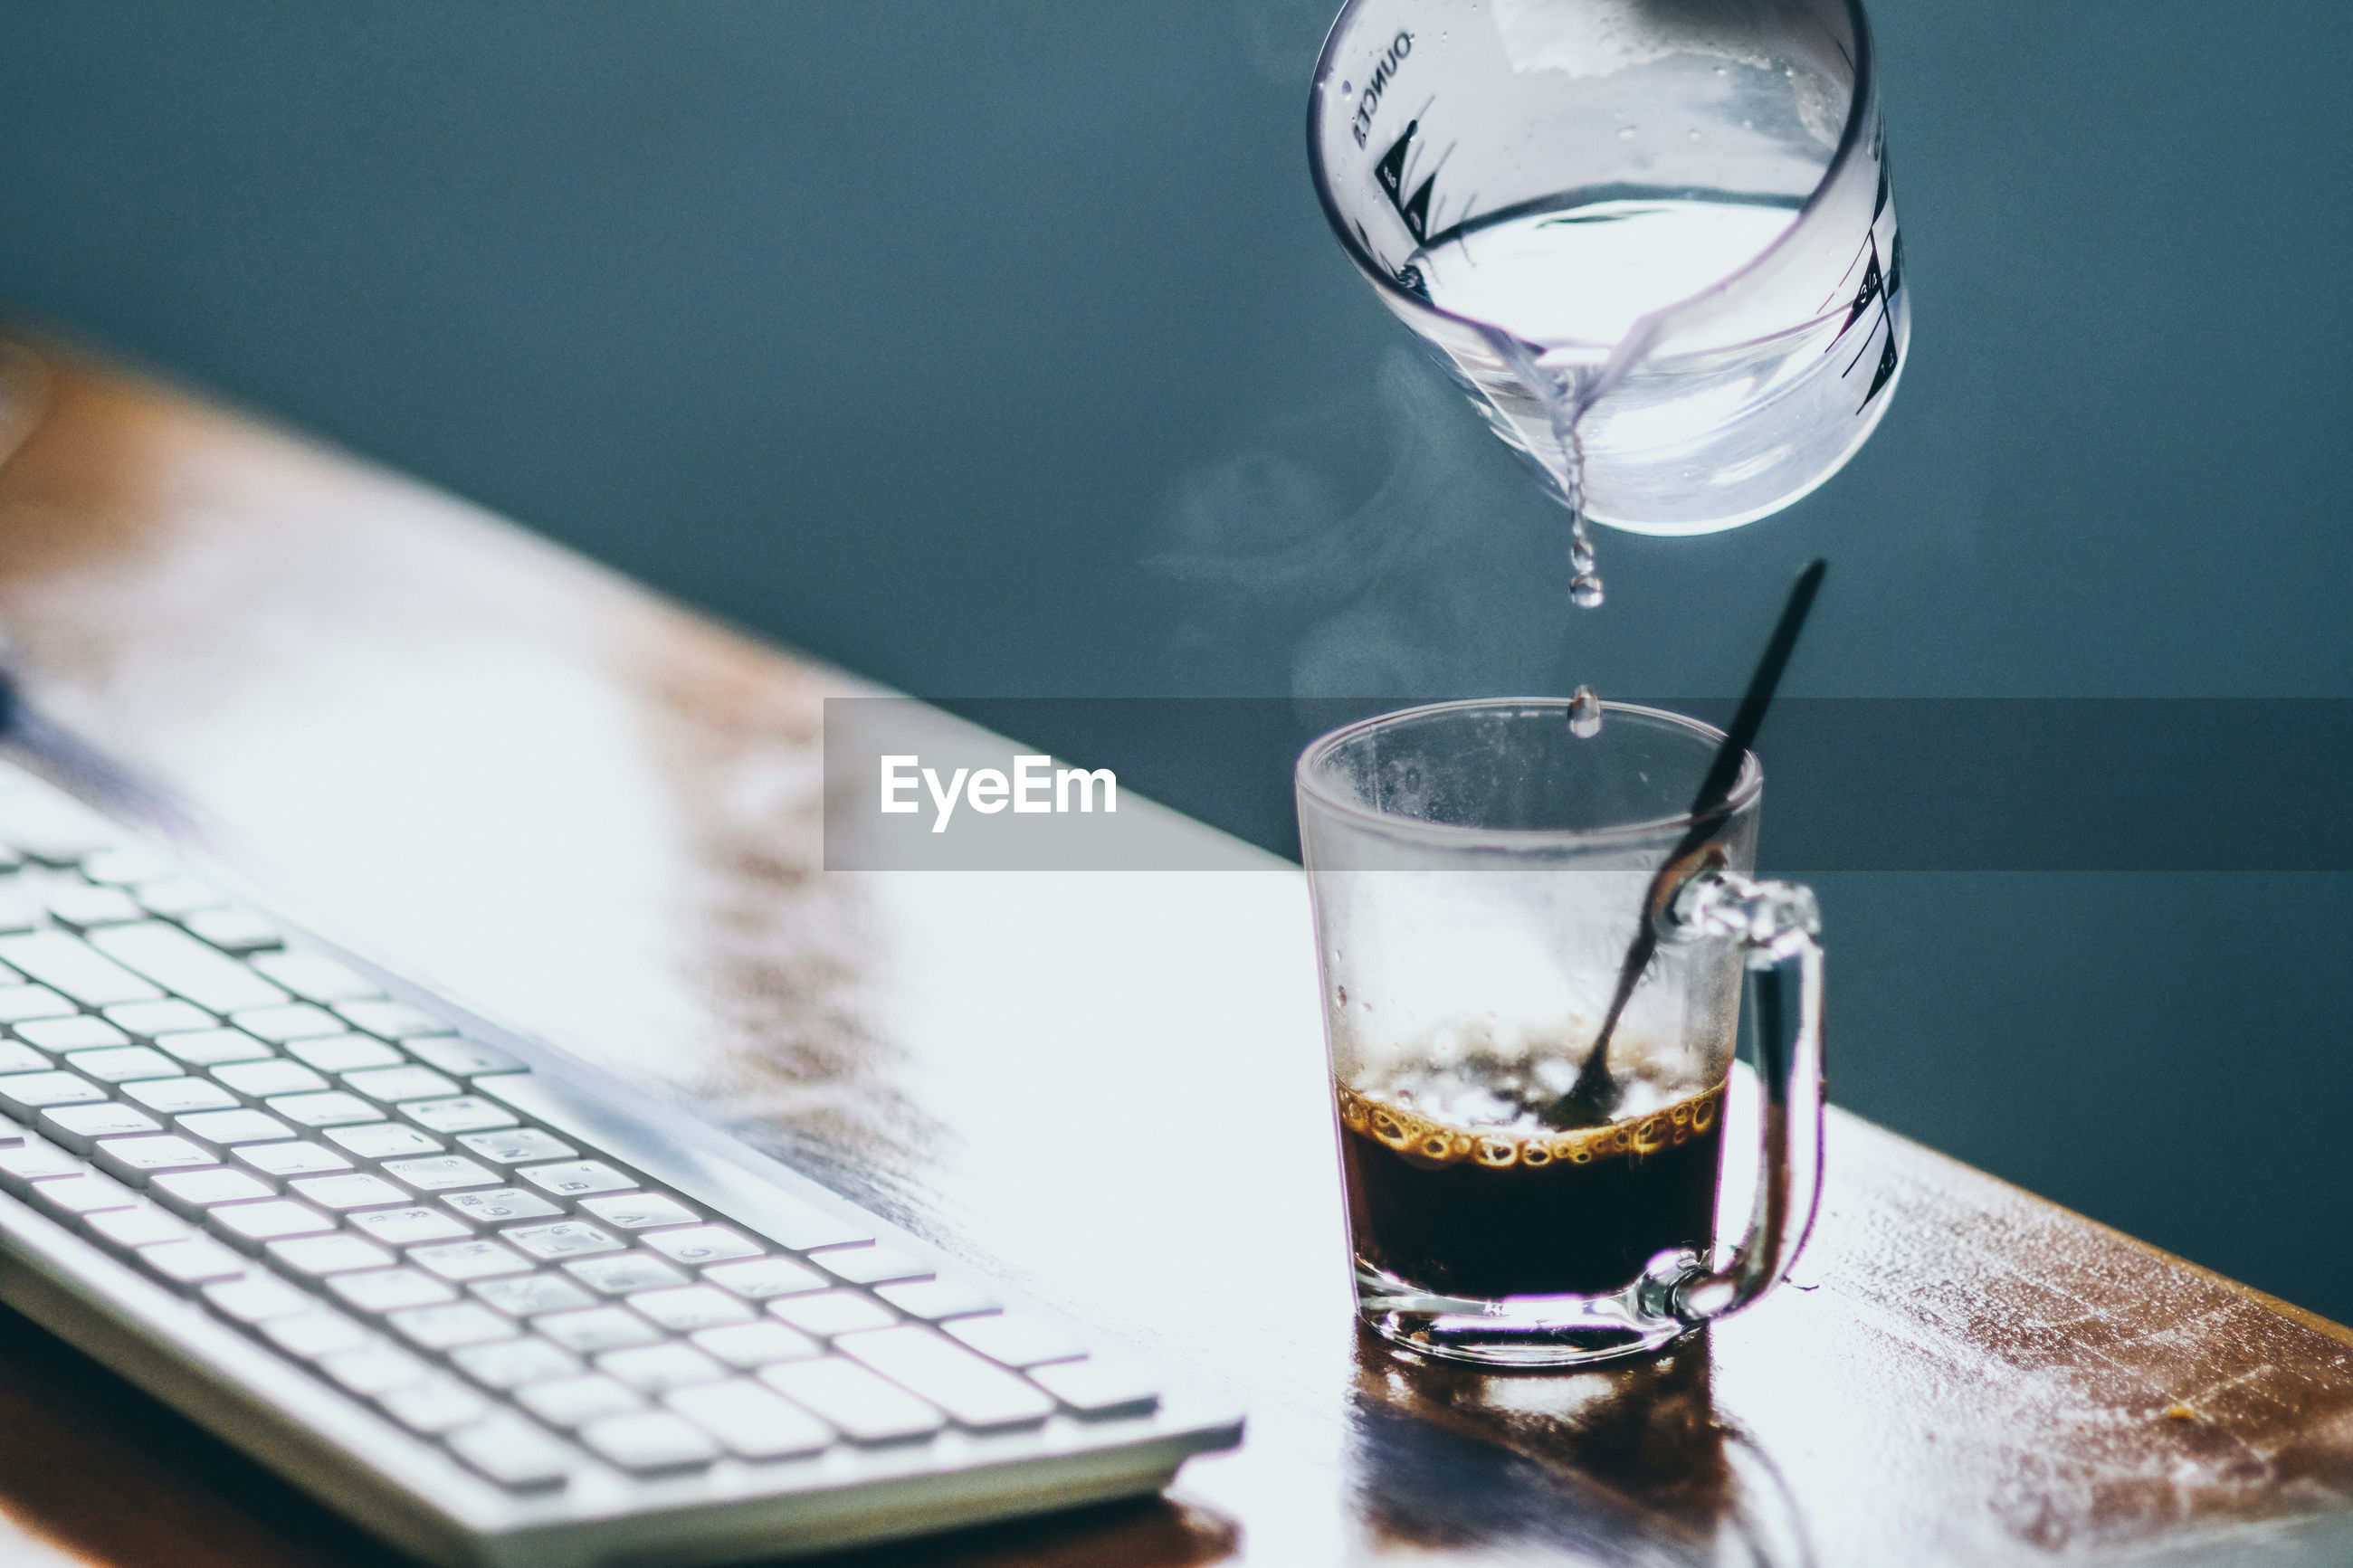 Water pouring in coffee cup by keyboard on table